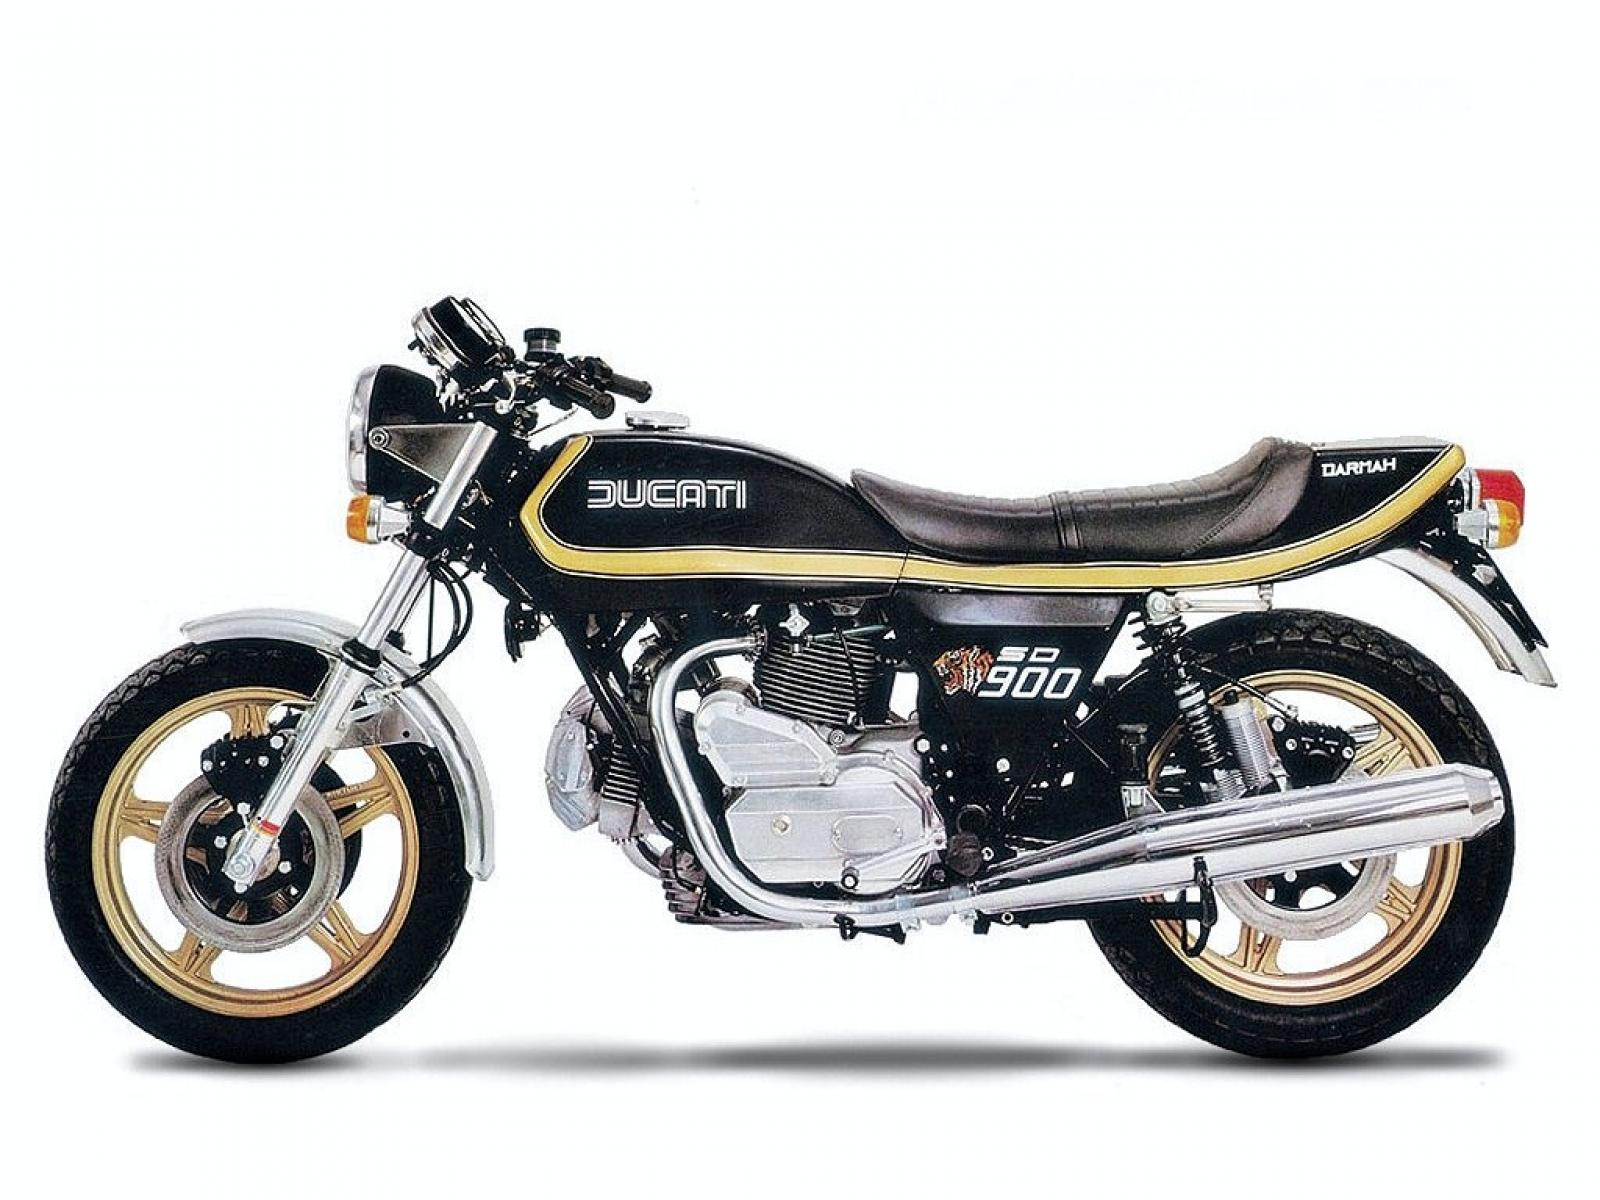 Ducati 900 SS Darmah 1981 wallpapers #16473